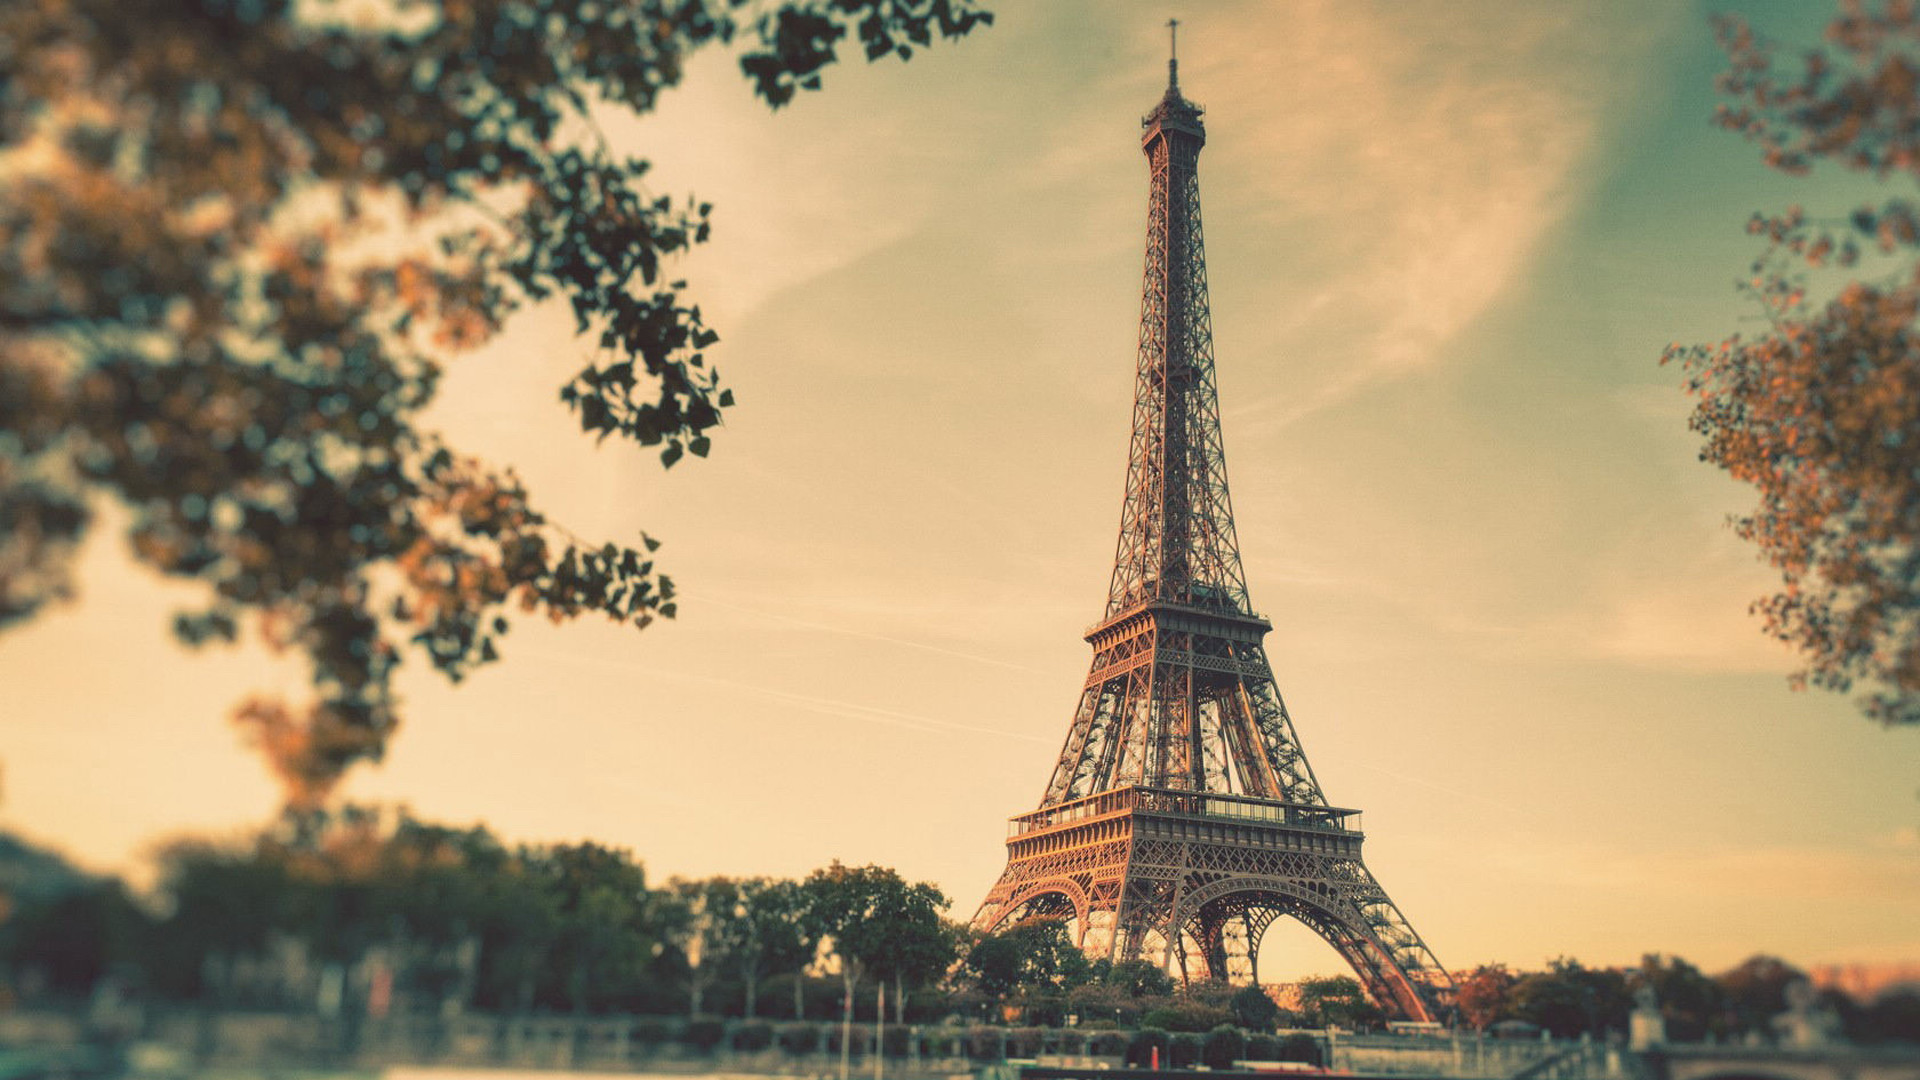 1920x1080 Vintage Eiffel Tower Free Desktop Wallpaper X